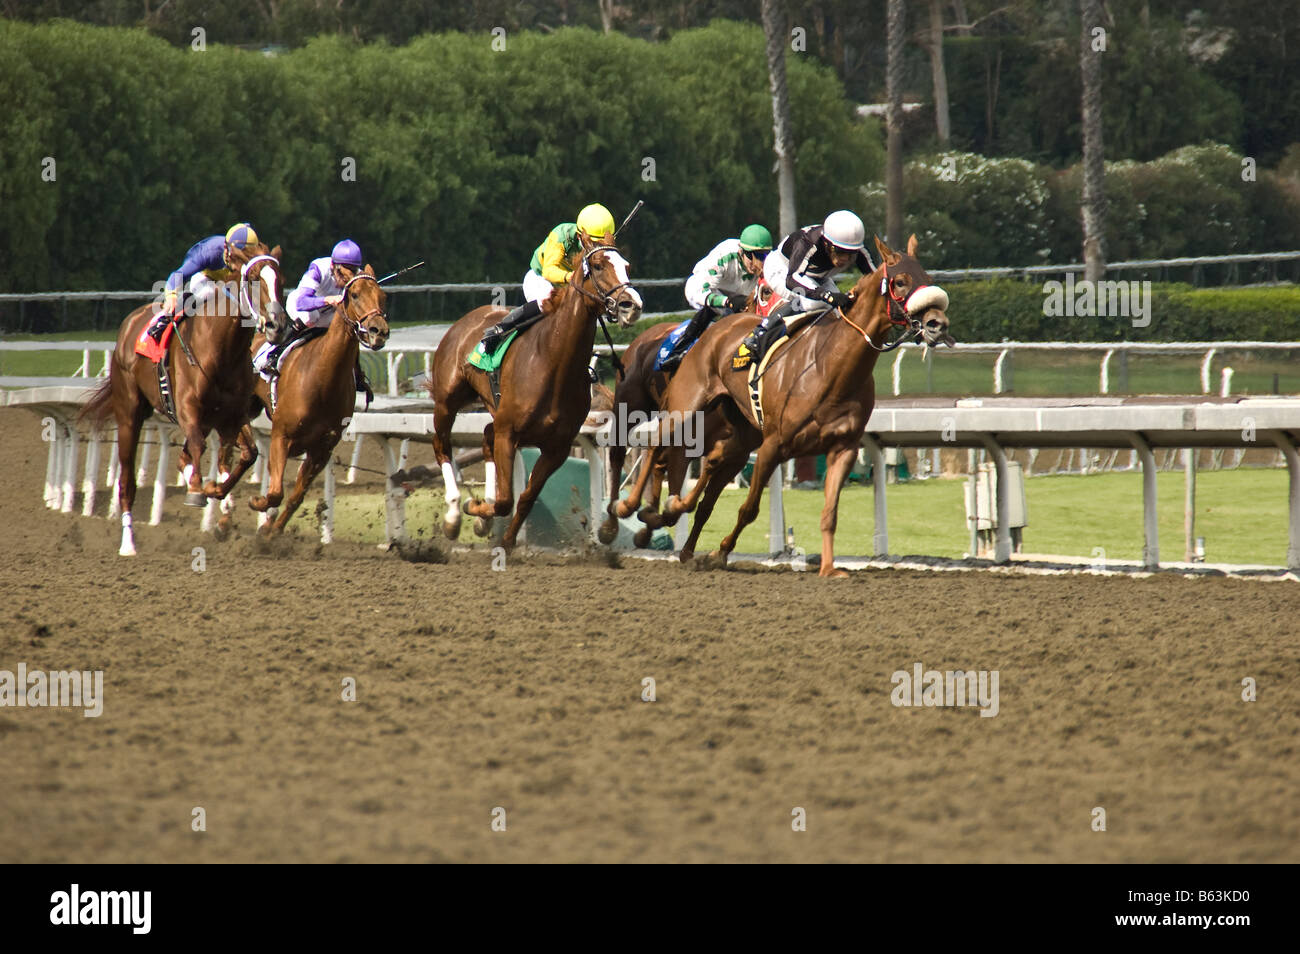 Horse race at Santa Anita Racetrack in Arcadia, CA. - Stock Image